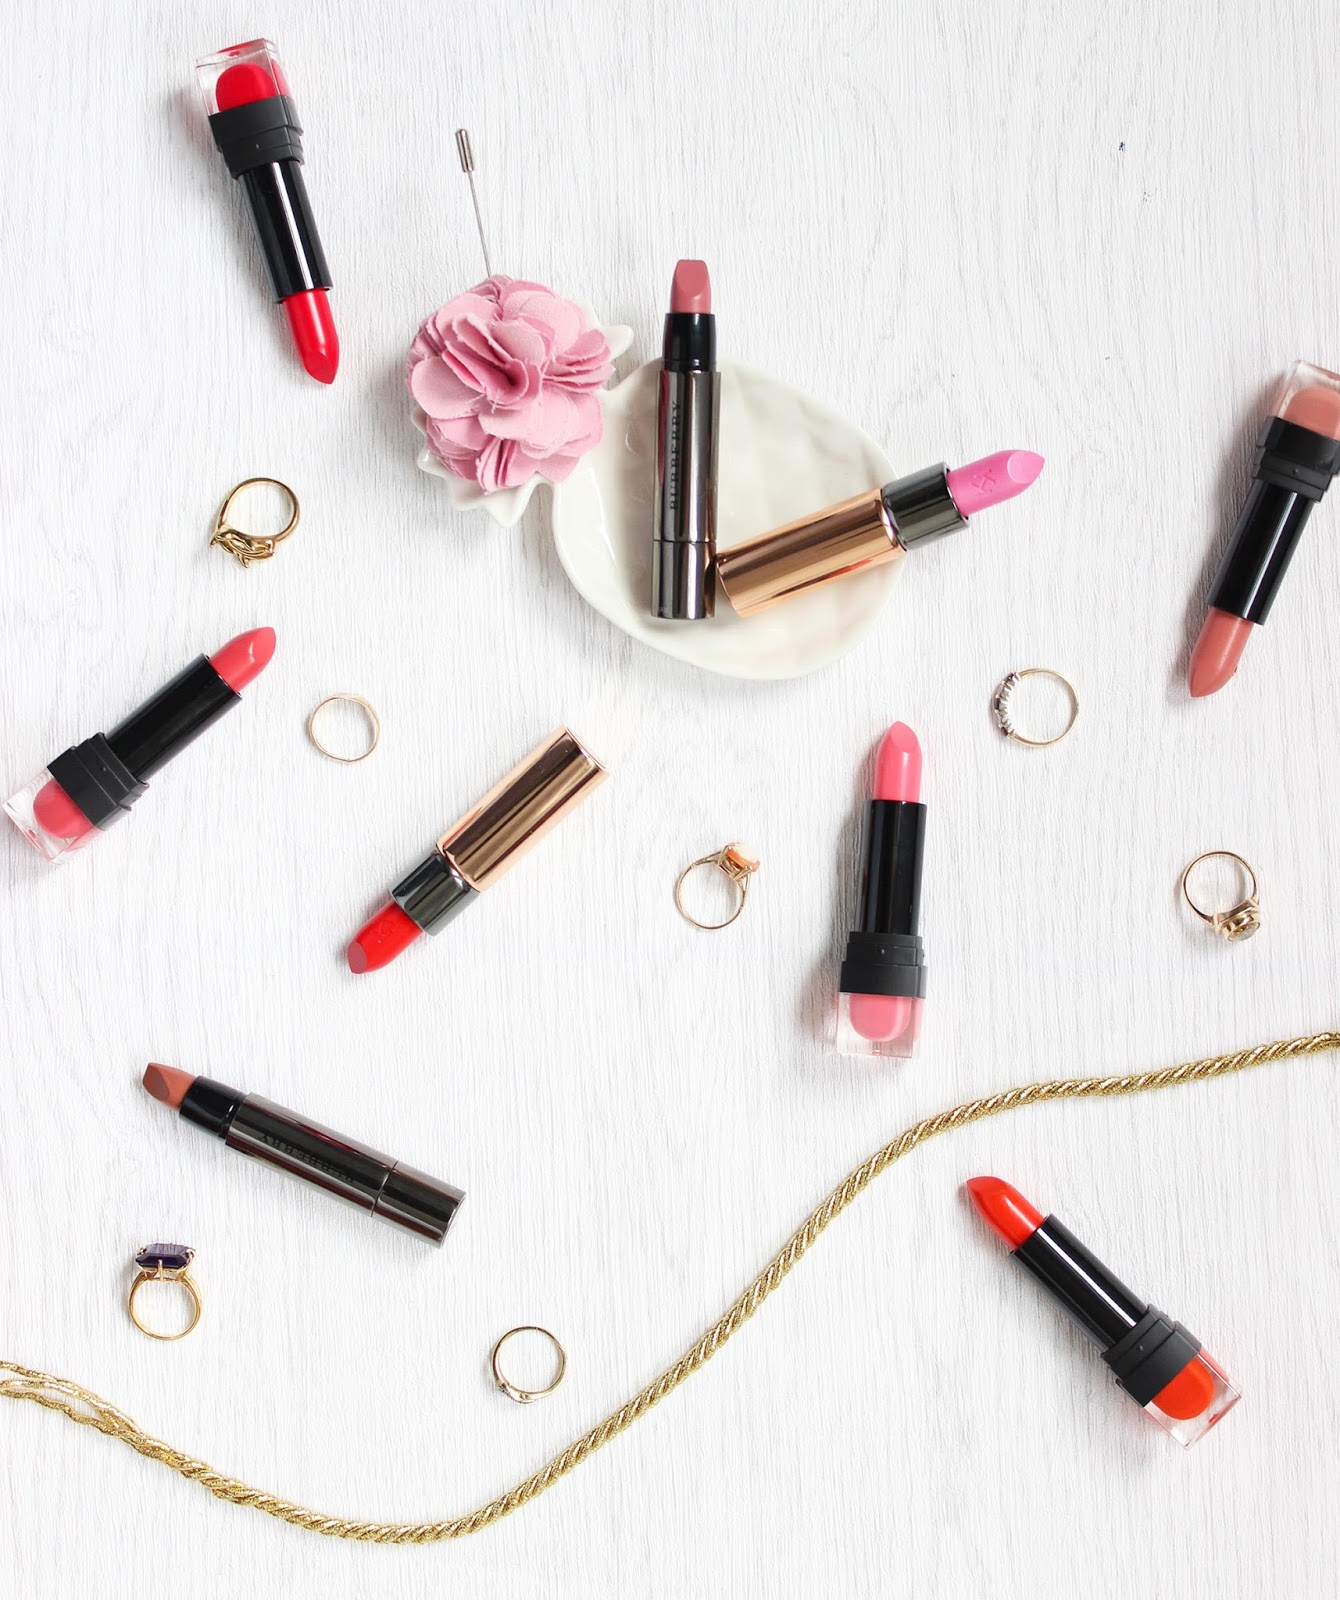 3 spring lipstick launches from Burberry, Kiko and Sleek